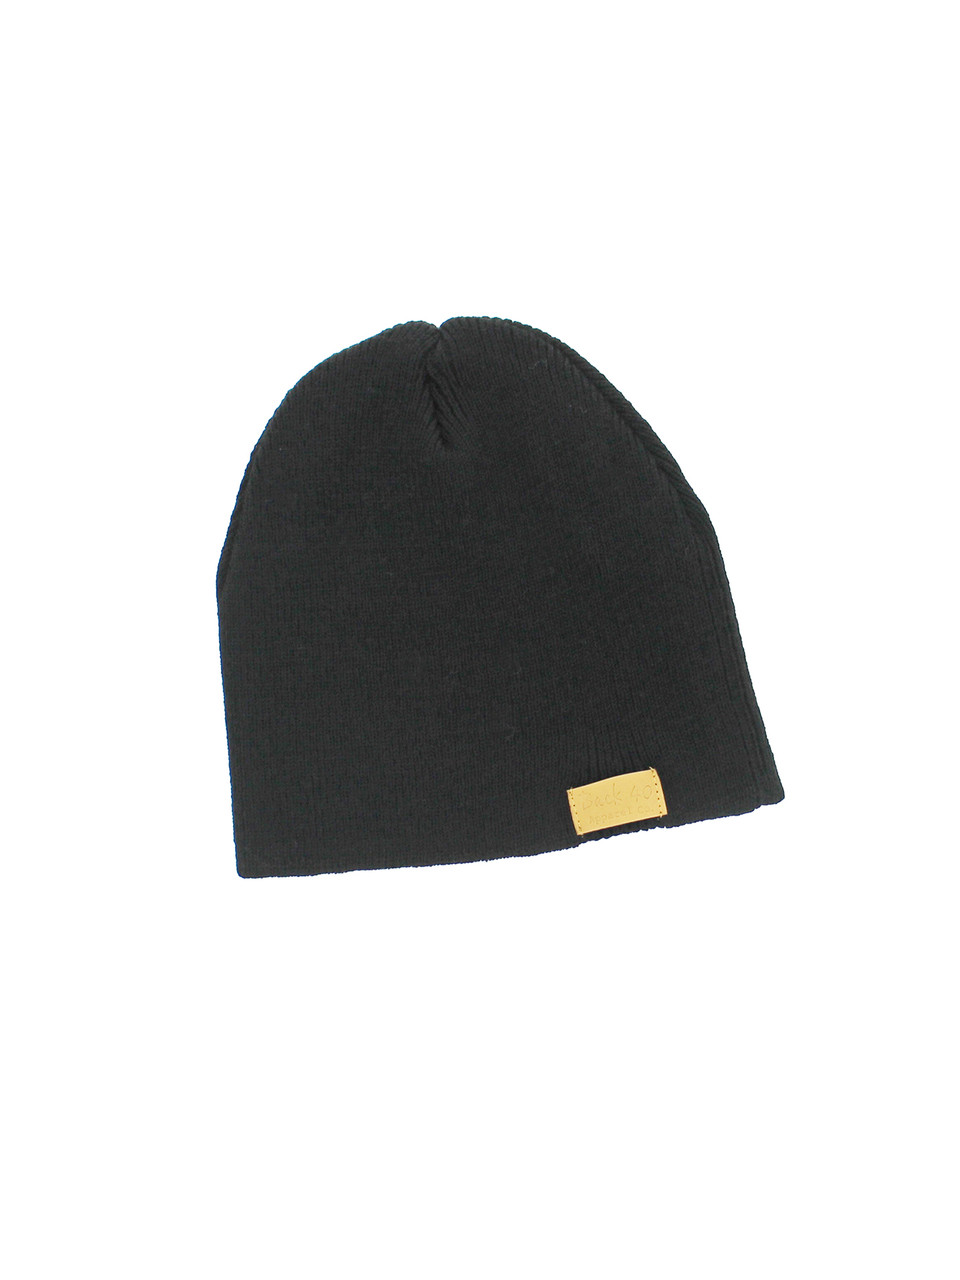 4b4ef2a22e373 Four Seam Cuffless Beanie Unisex Black Thick and Warm Knit Winter Hat by  Back 40